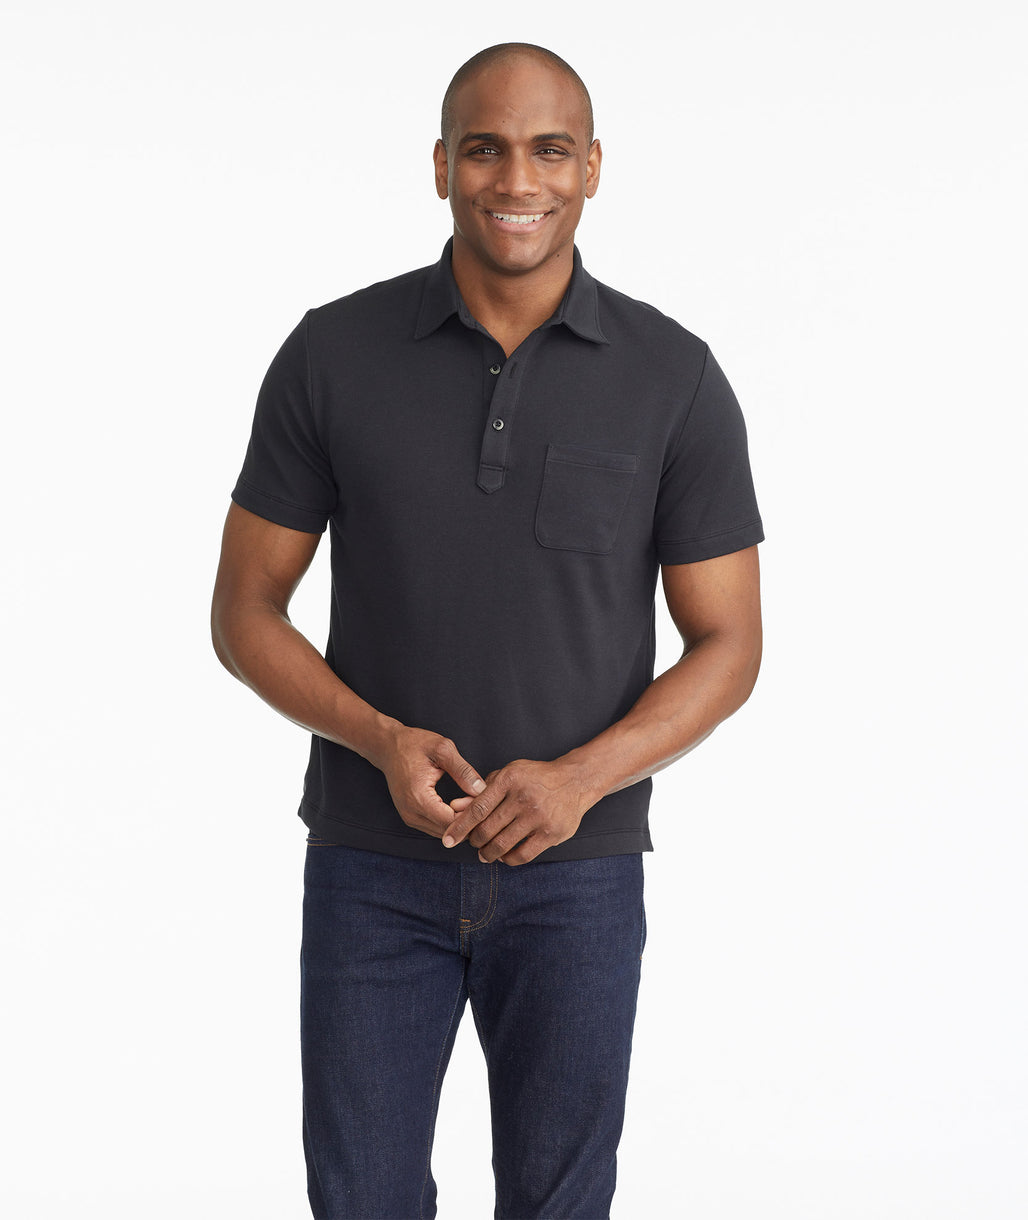 Model wearing a Black The Lafayette Polo - FINAL SALE